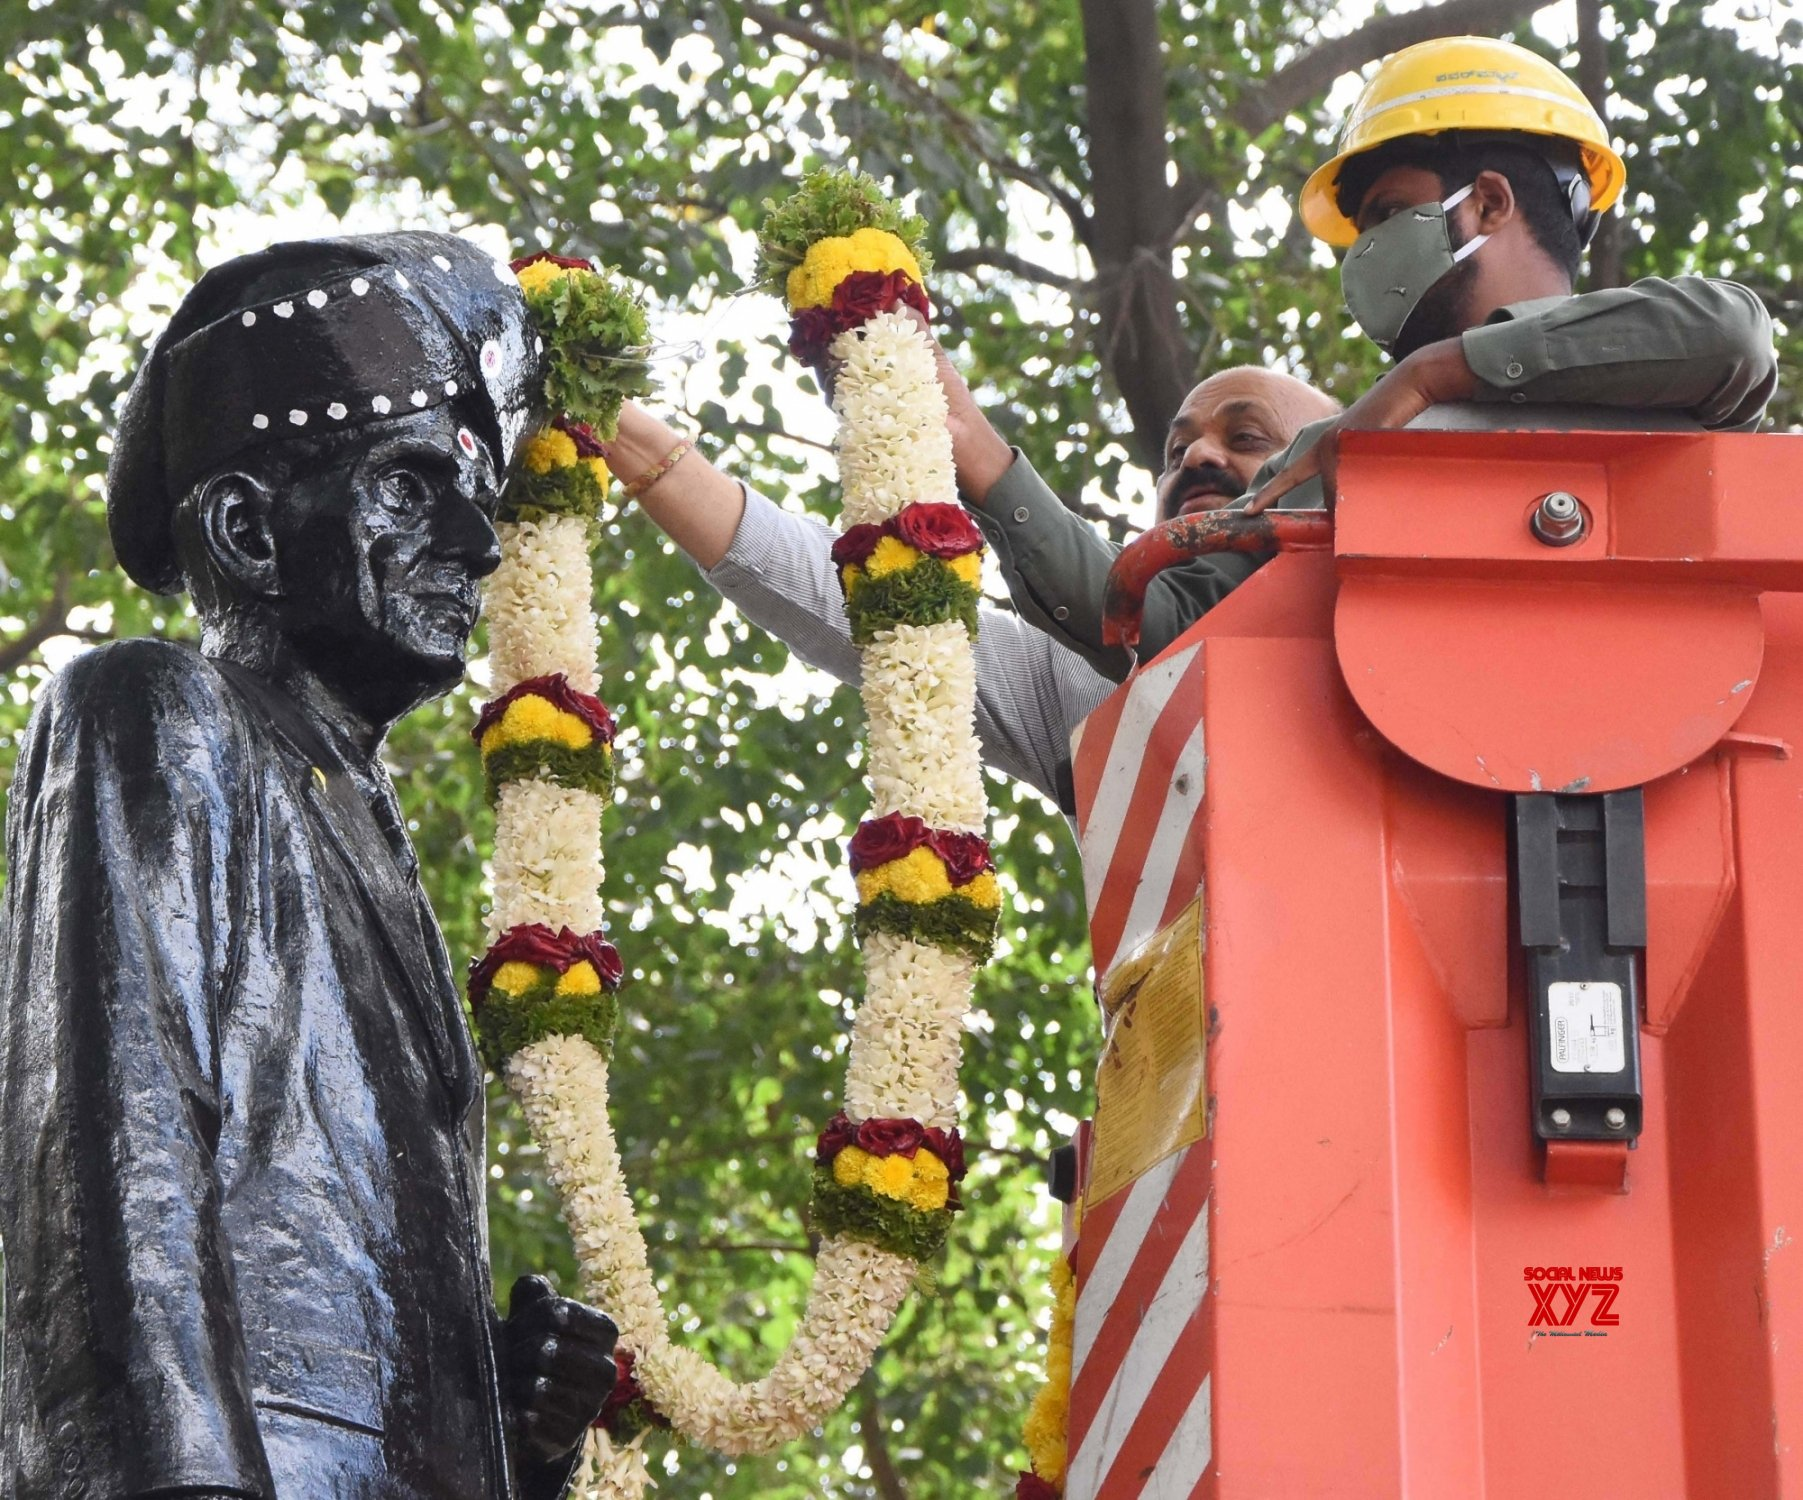 Bengaluru: Chief Minister of Karnataka Basavaraj Bommai garlanded the statue of Sir M Visvesvaraya during inauguration of - Sir M Visvesvaraya square at KR Circle on the occasion of National Engineers Day, in Bengaluru on Wednesday 15th September 2021 #Gallery